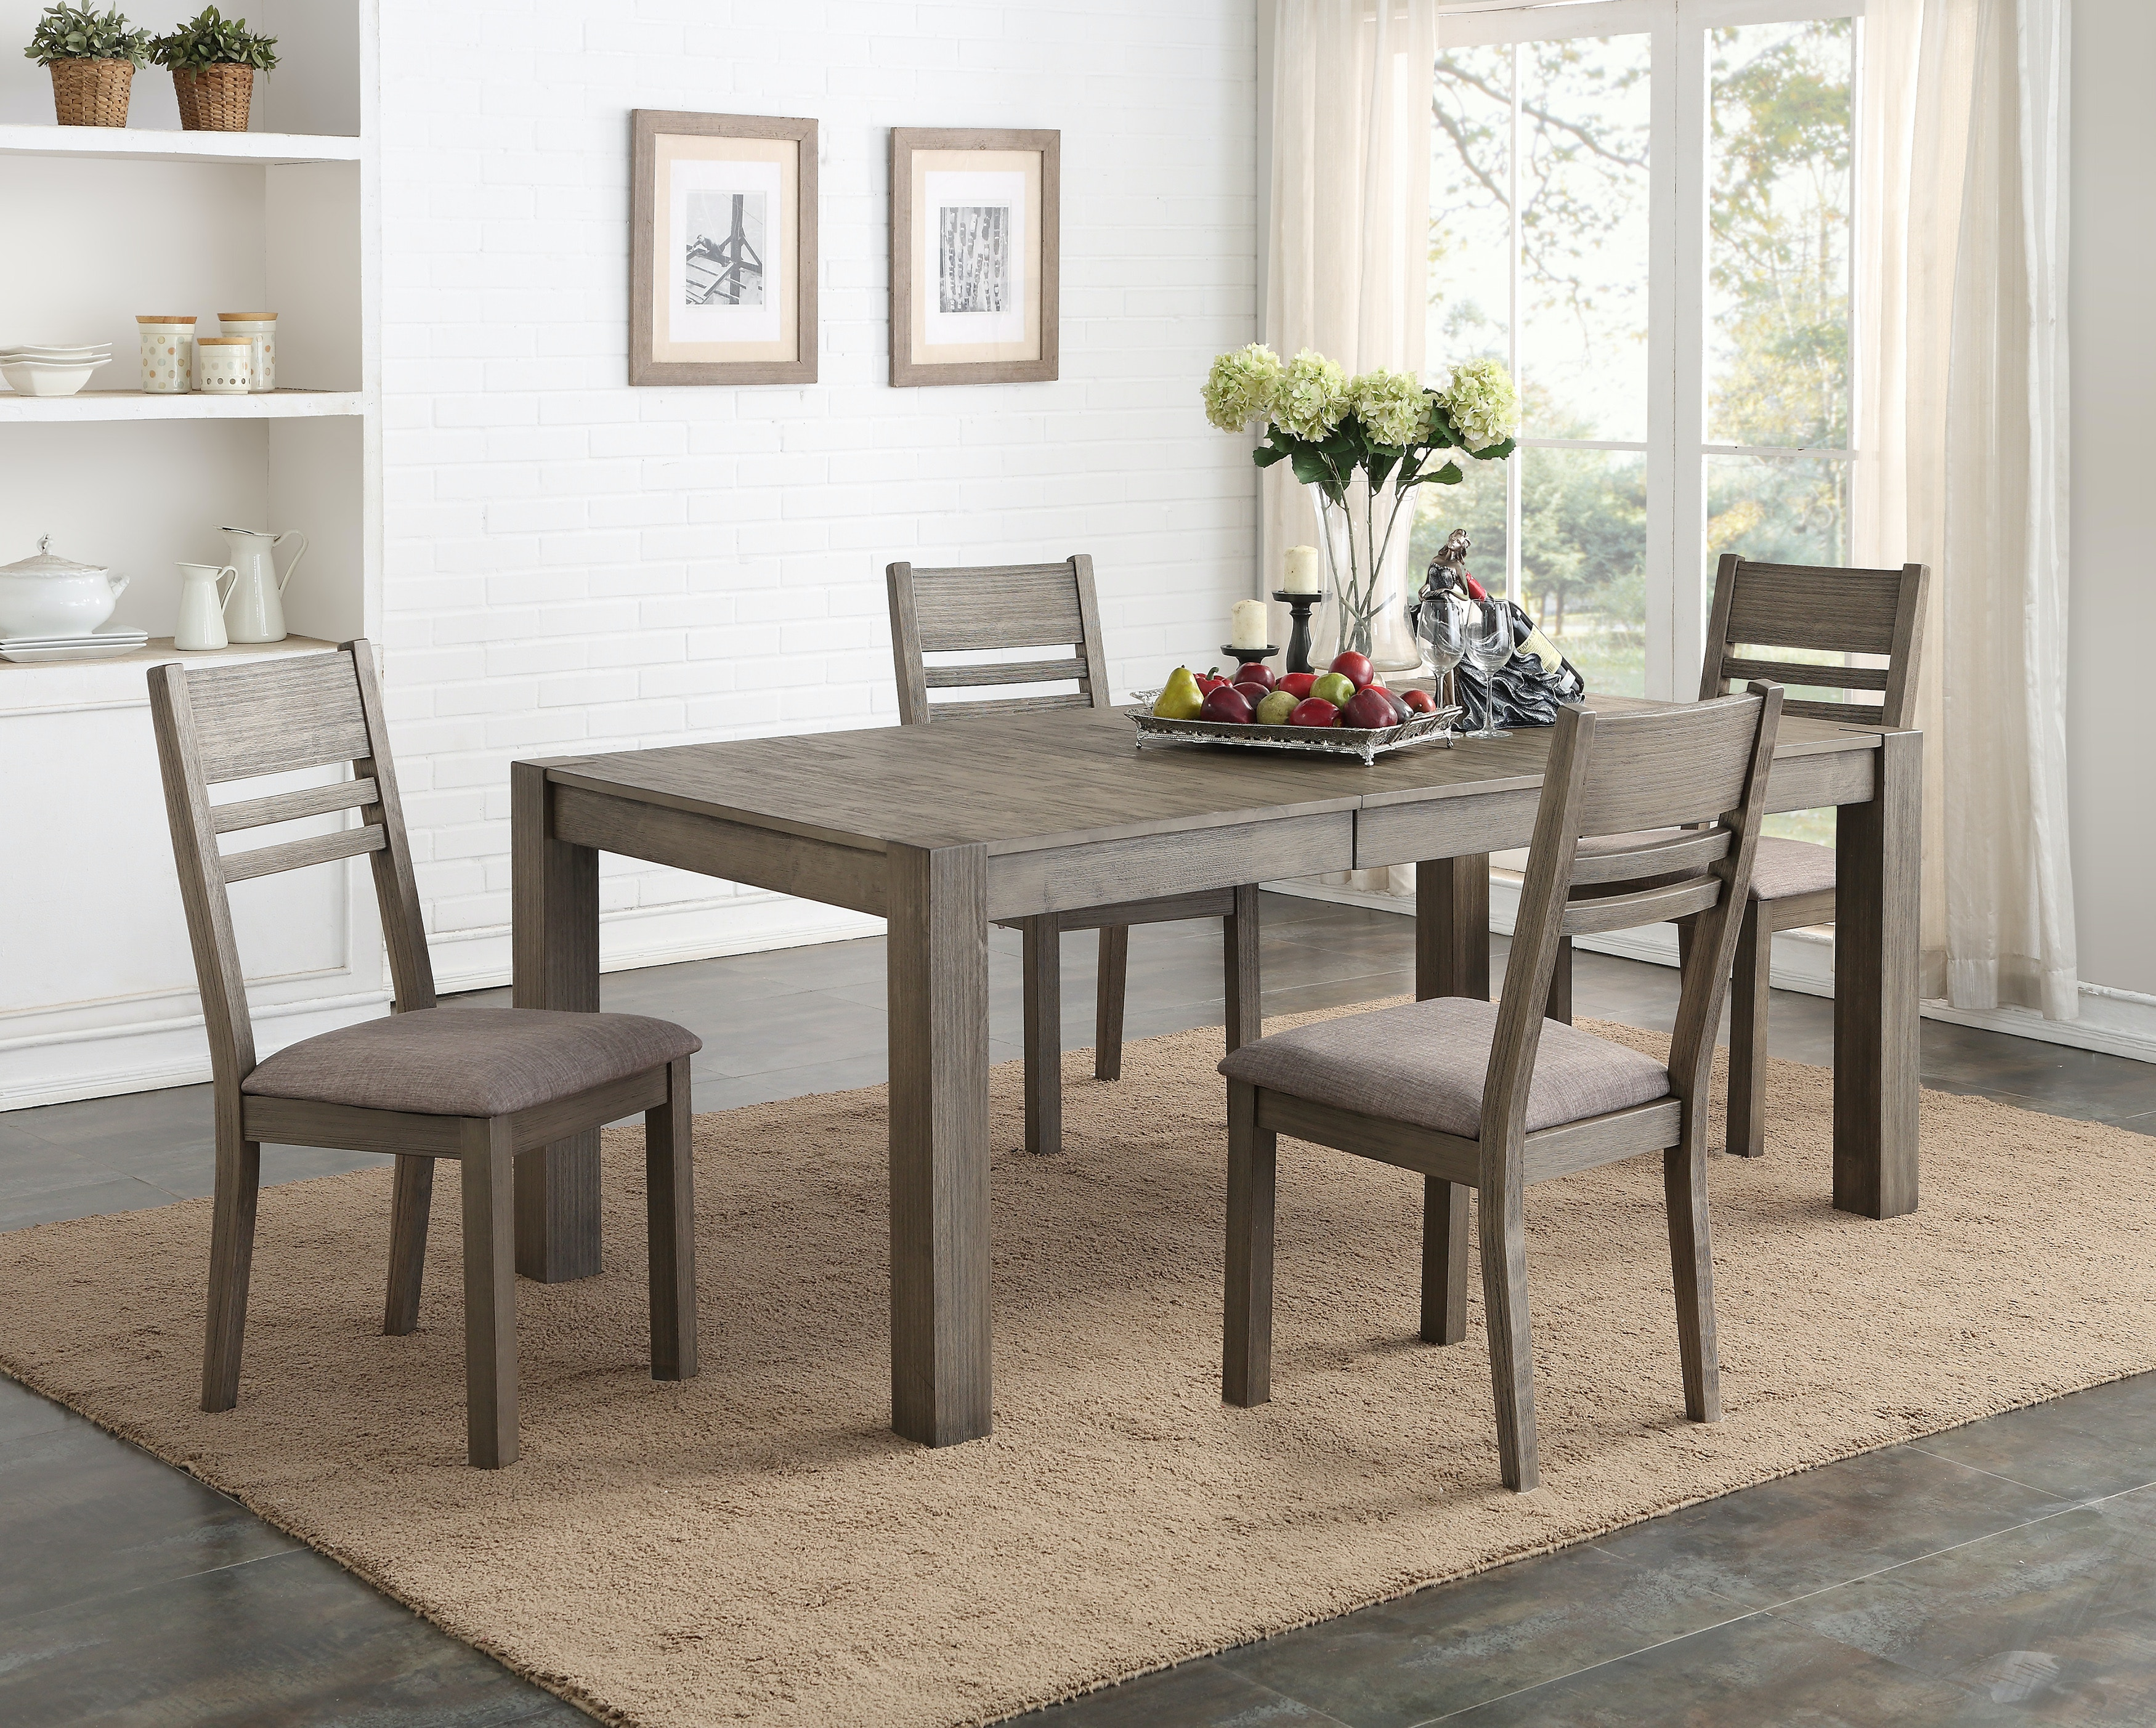 Easton Grey 5 Piece Dining Set: Includes Rectangle Table U0026 4 Ladder Back  Side Chairs